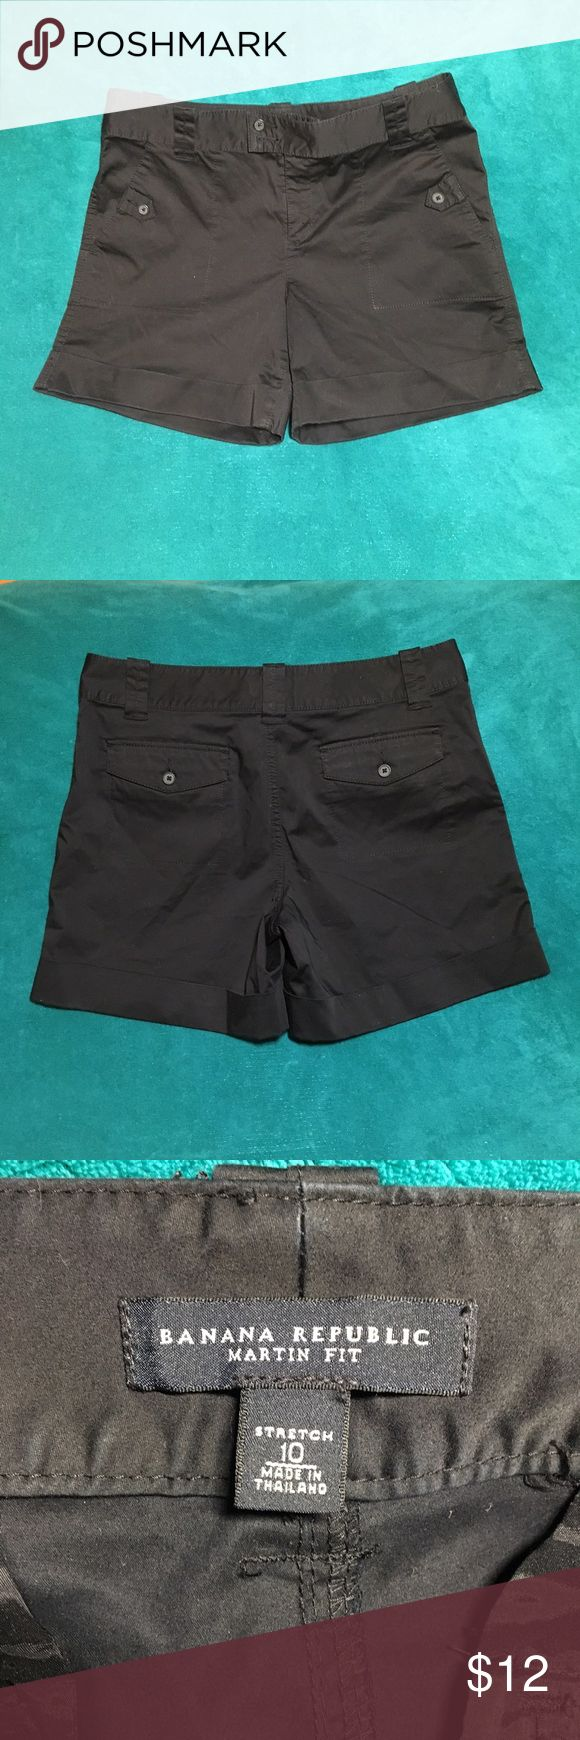 """Banana Republic Shorts Martin Fit Size 10 BLACK Banana Republic 10 Black Shorts Martin Fit Cotton Stretch Twill Roll Cuffs.  Great Condition Lightly used.  Inseam 6"""".  Stretch. B-1 Banana Republic Shorts"""